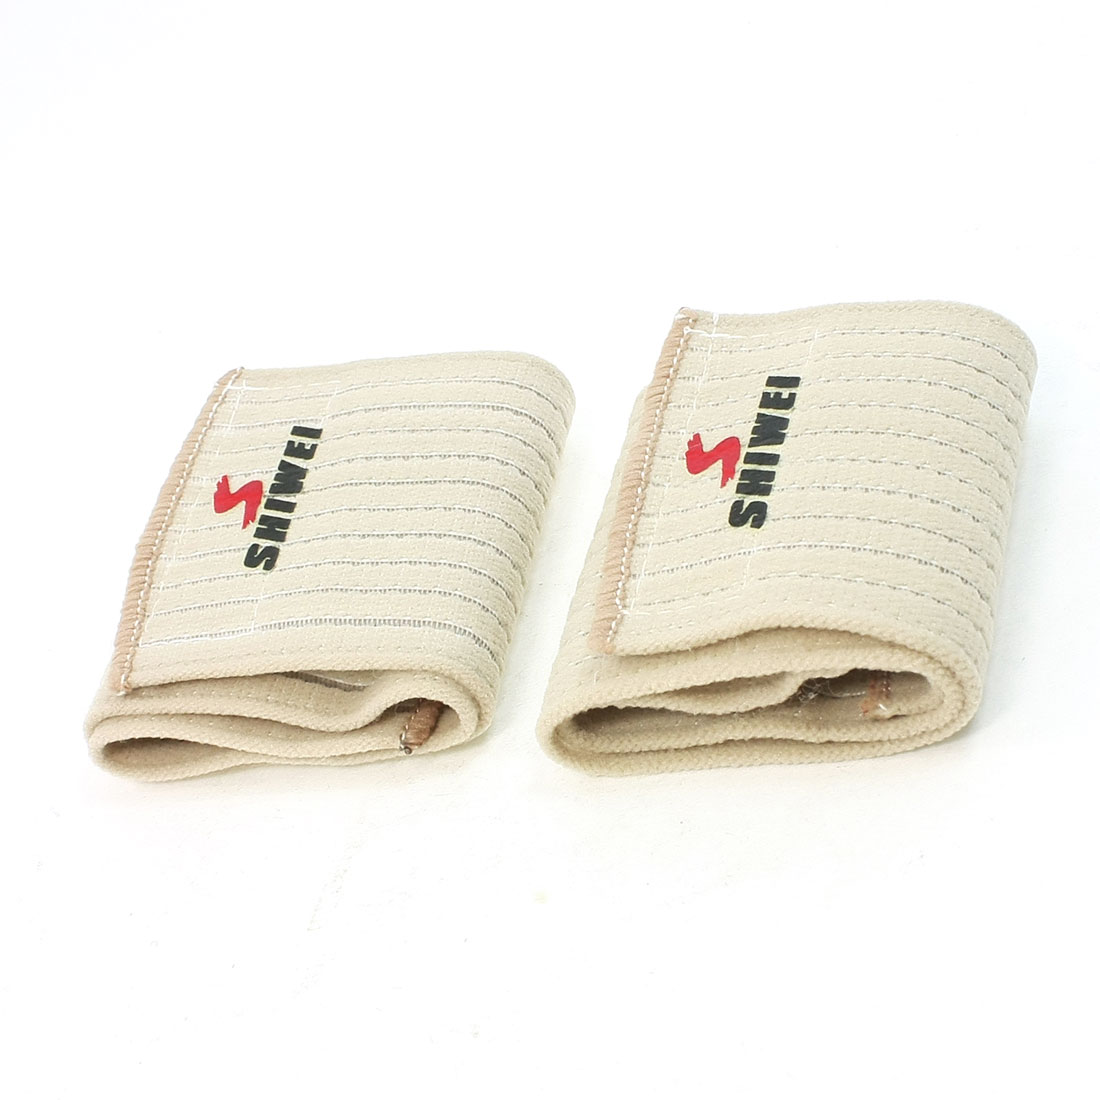 Pair Sports Athlete Hook Loop Closure Elastic Wrist Support Beige